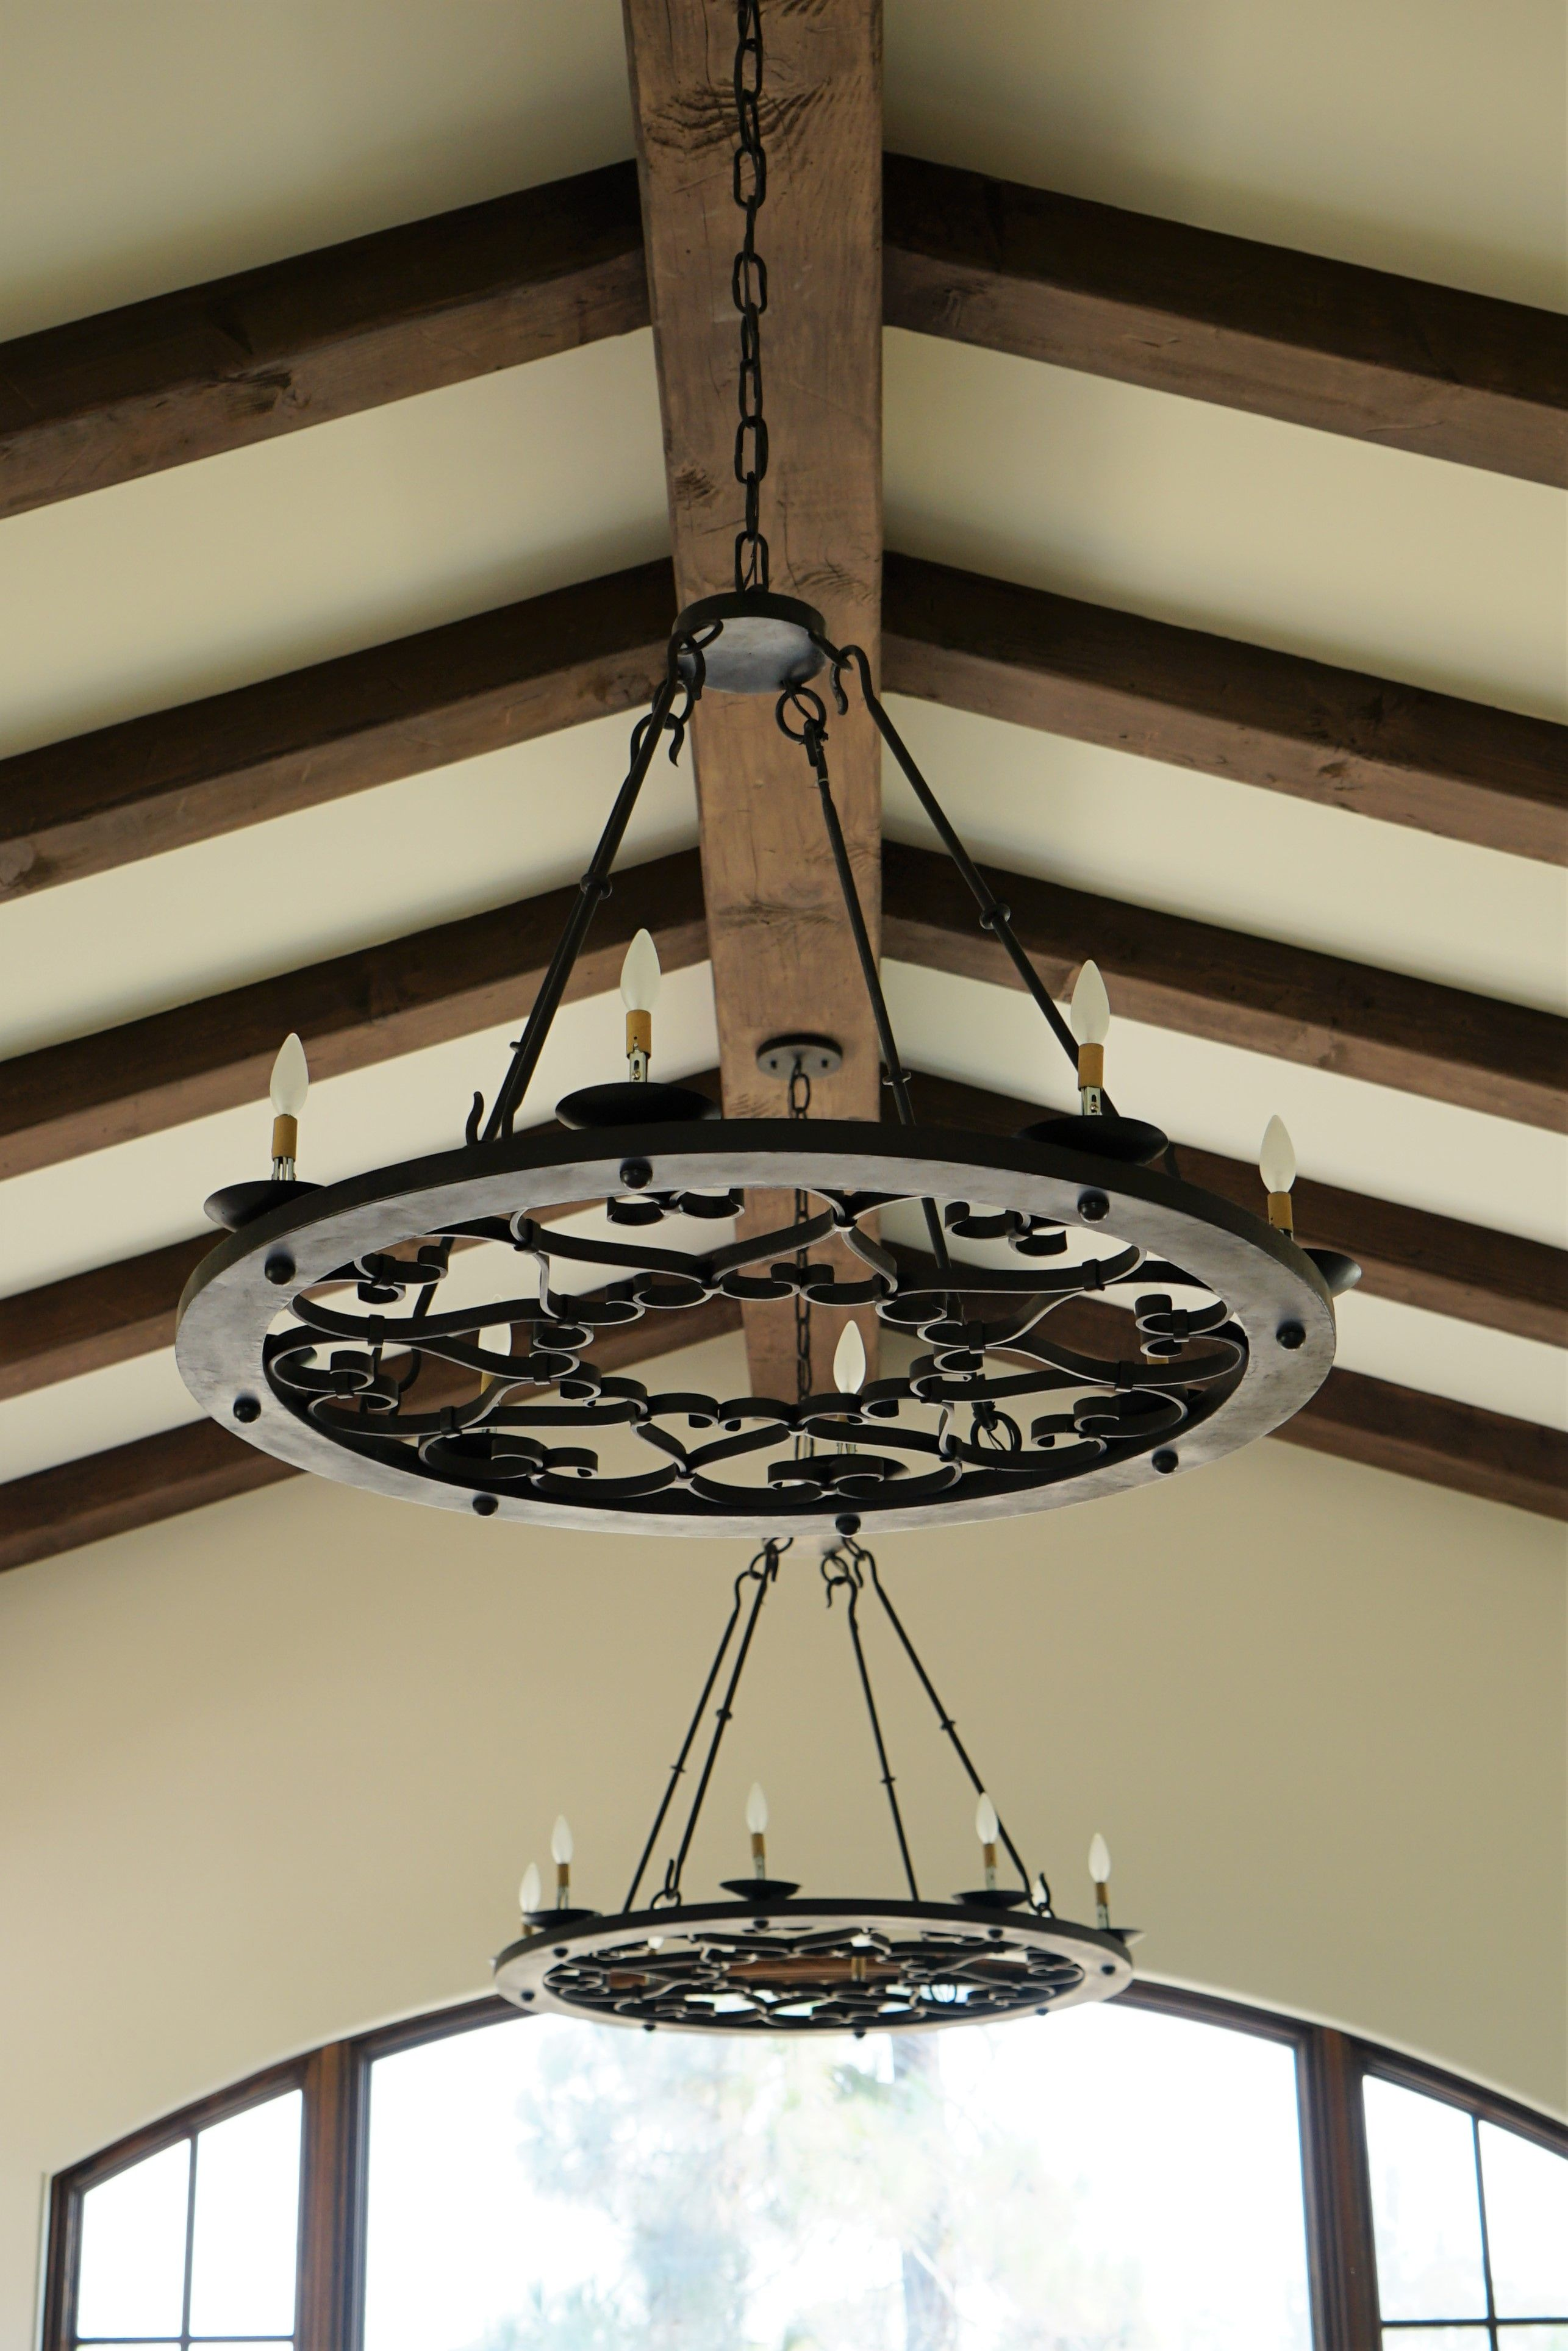 Custom hand forged iron chandeliers made by haciendalights custom hand forged iron chandeliers made by haciendalights arubaitofo Choice Image